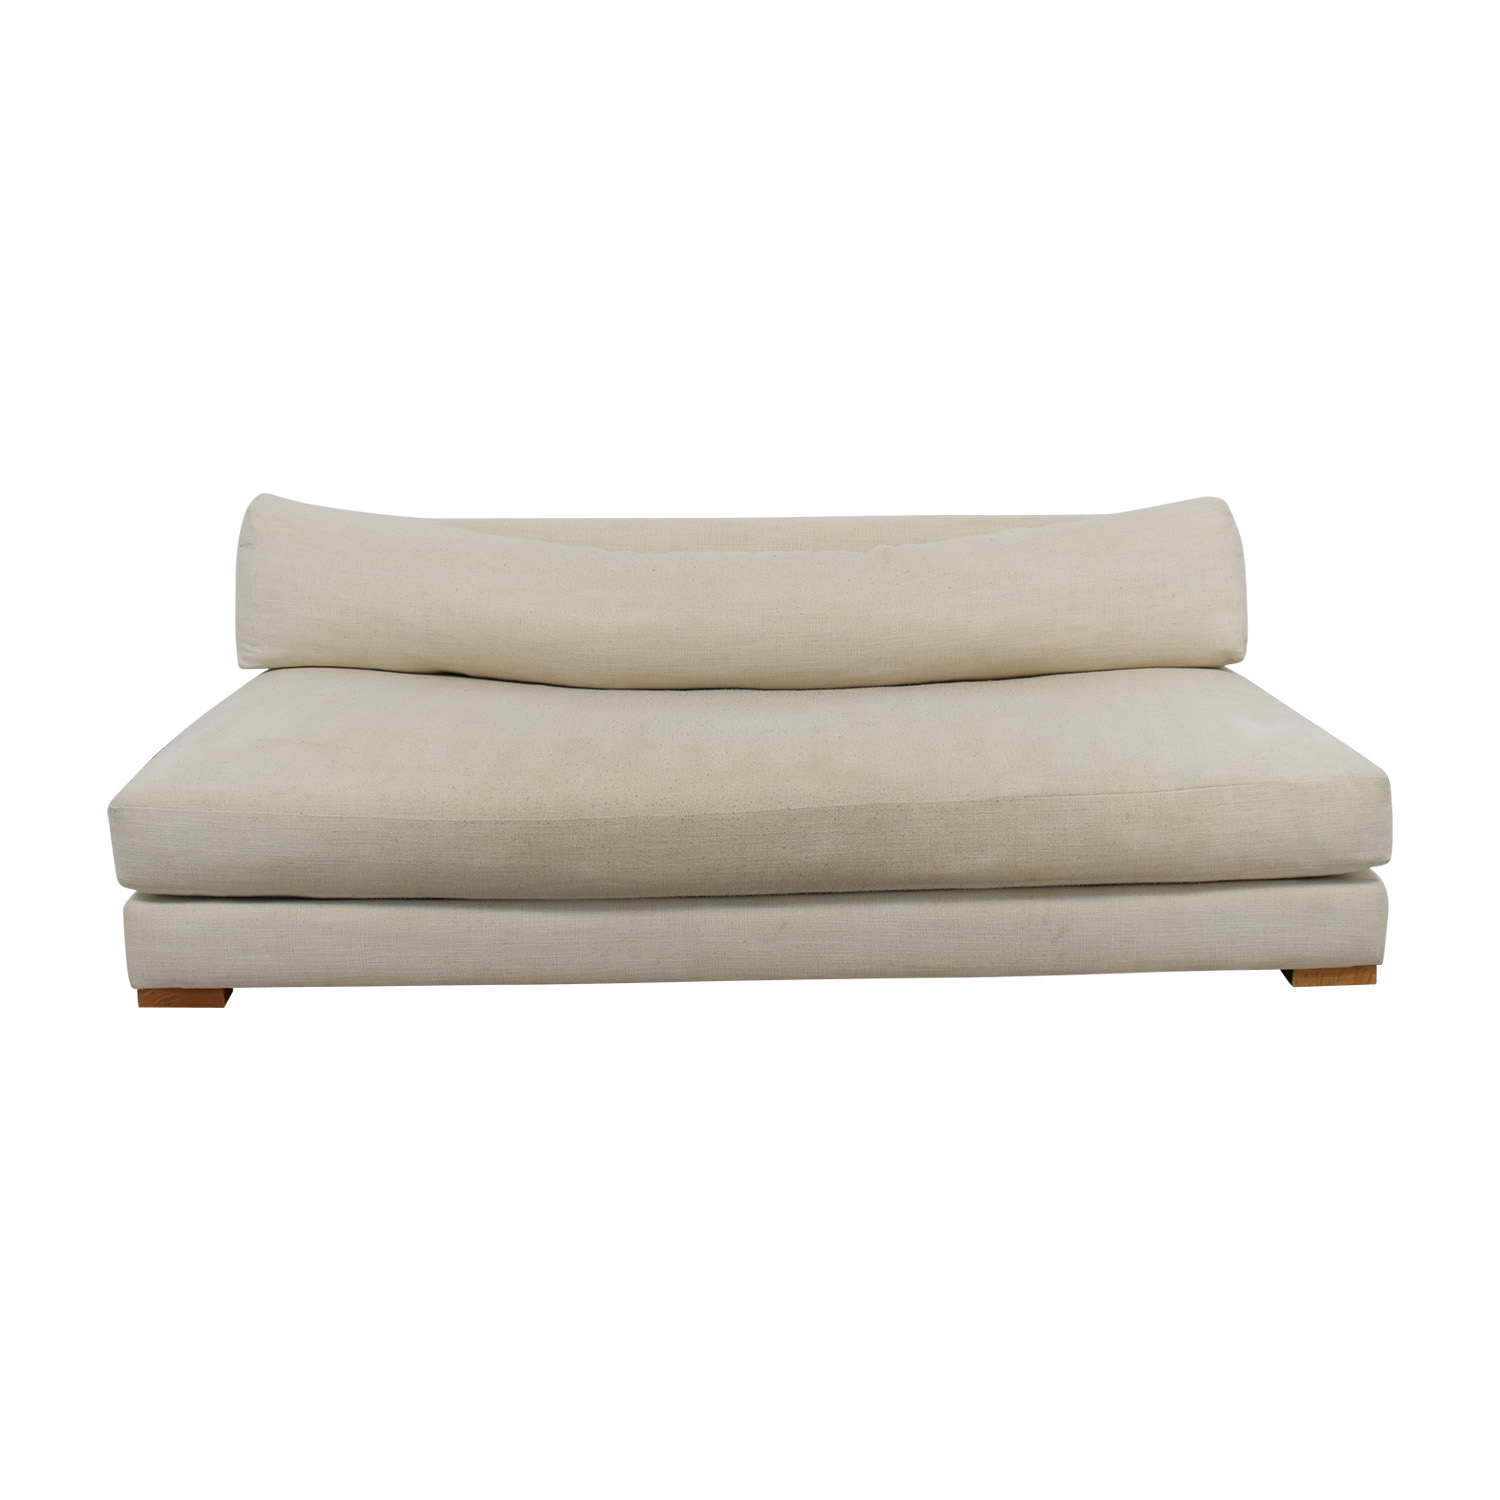 shop CB2 CB2 Piazza White Single Cushion Sofa online